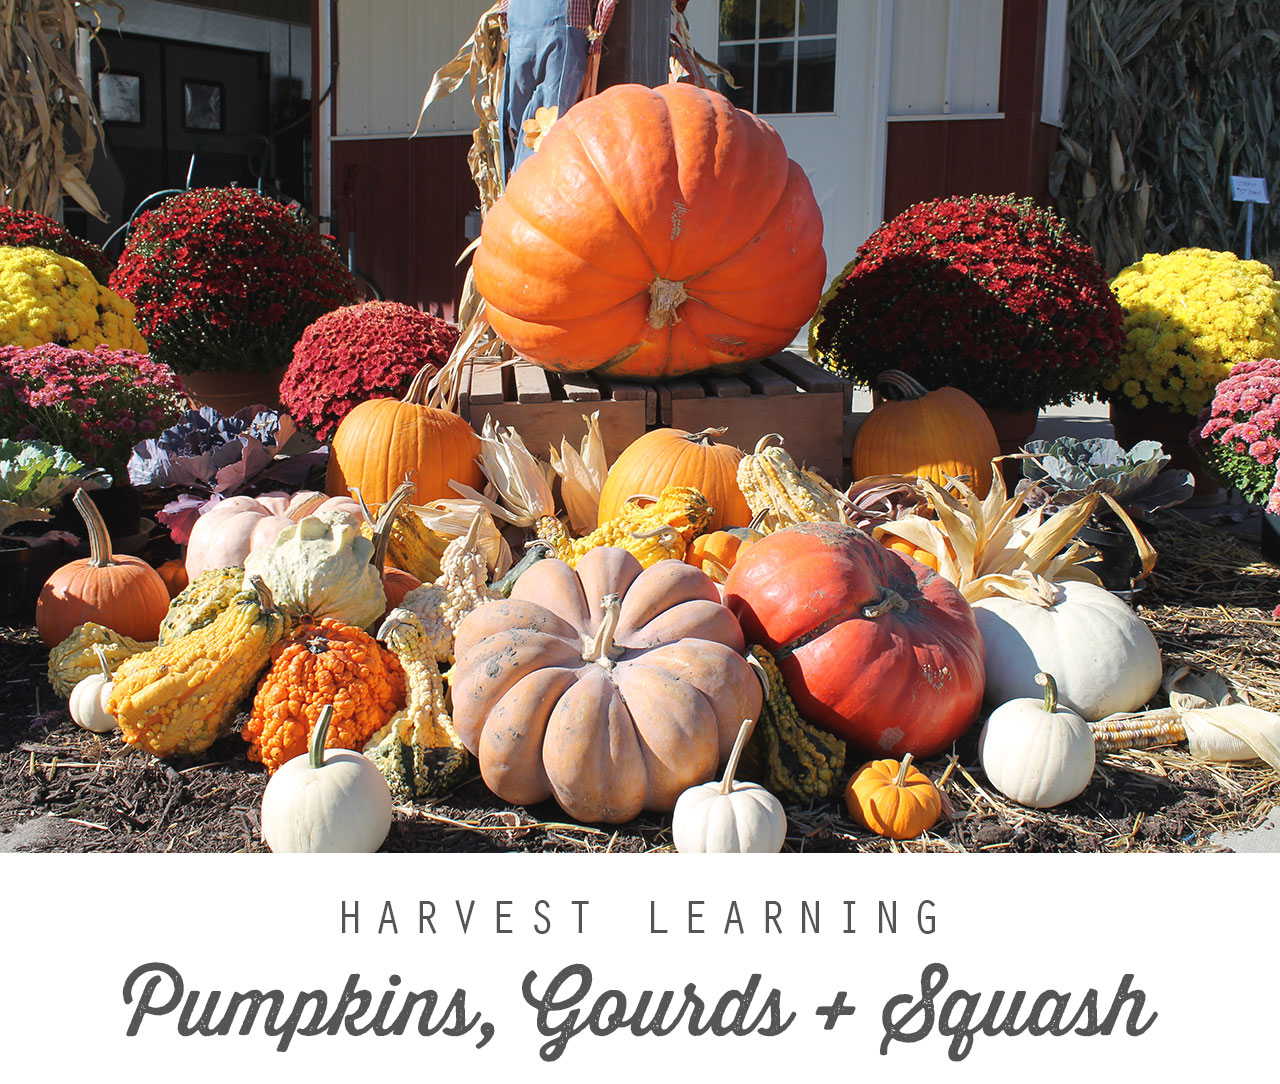 Harvest Learning: Pumpkins, Gourds, and Squash